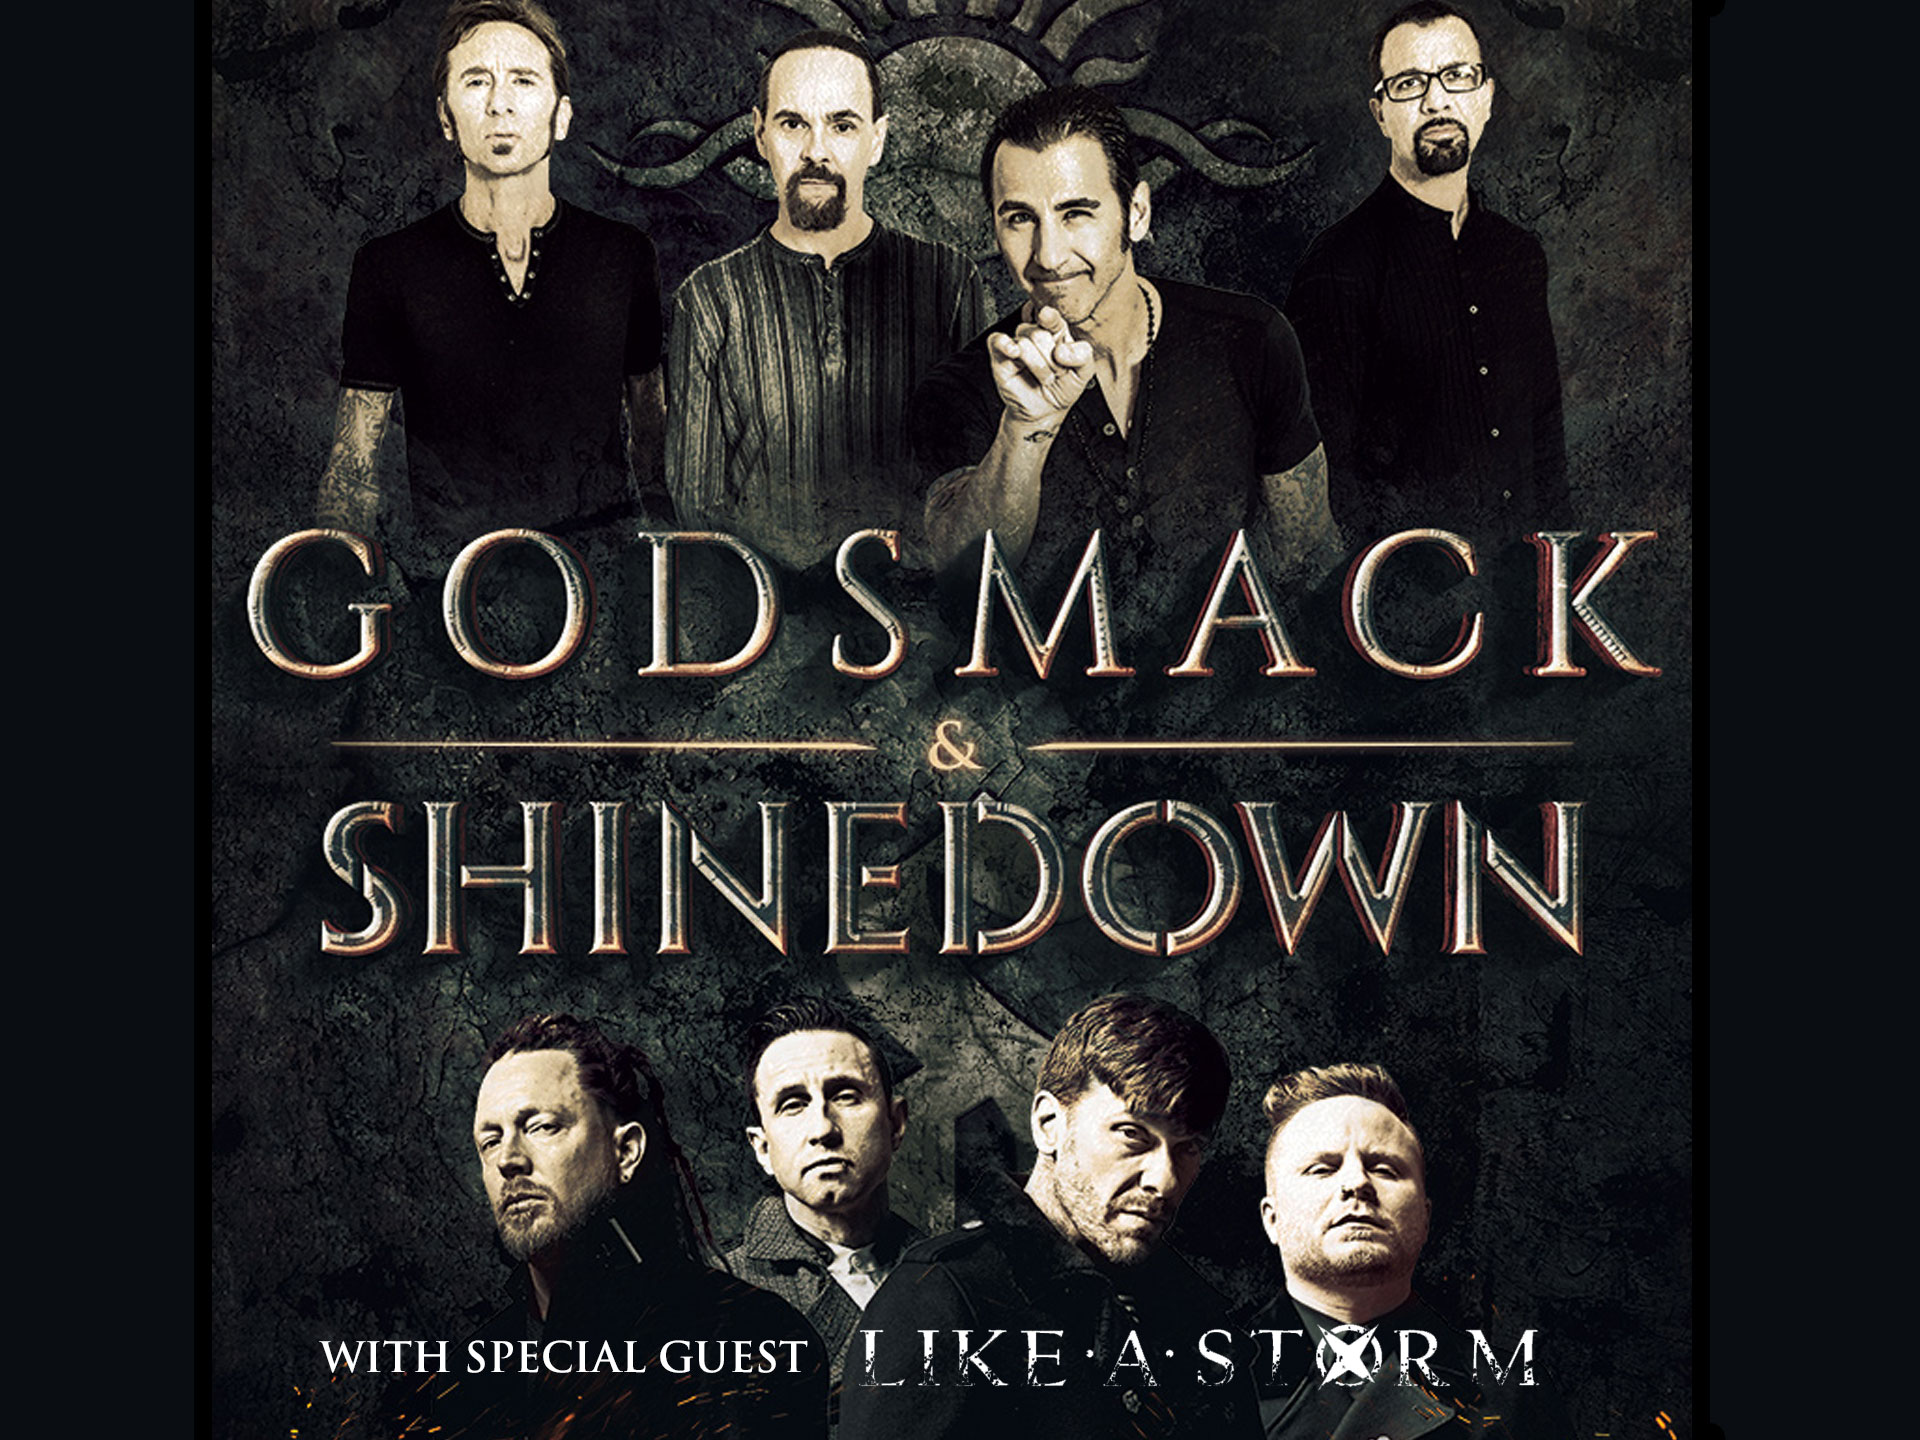 Image for GODSMACK / SHINEDOWN wsg Like A Storm - Wednesday, July 25, 2018 (OUTDOORS)